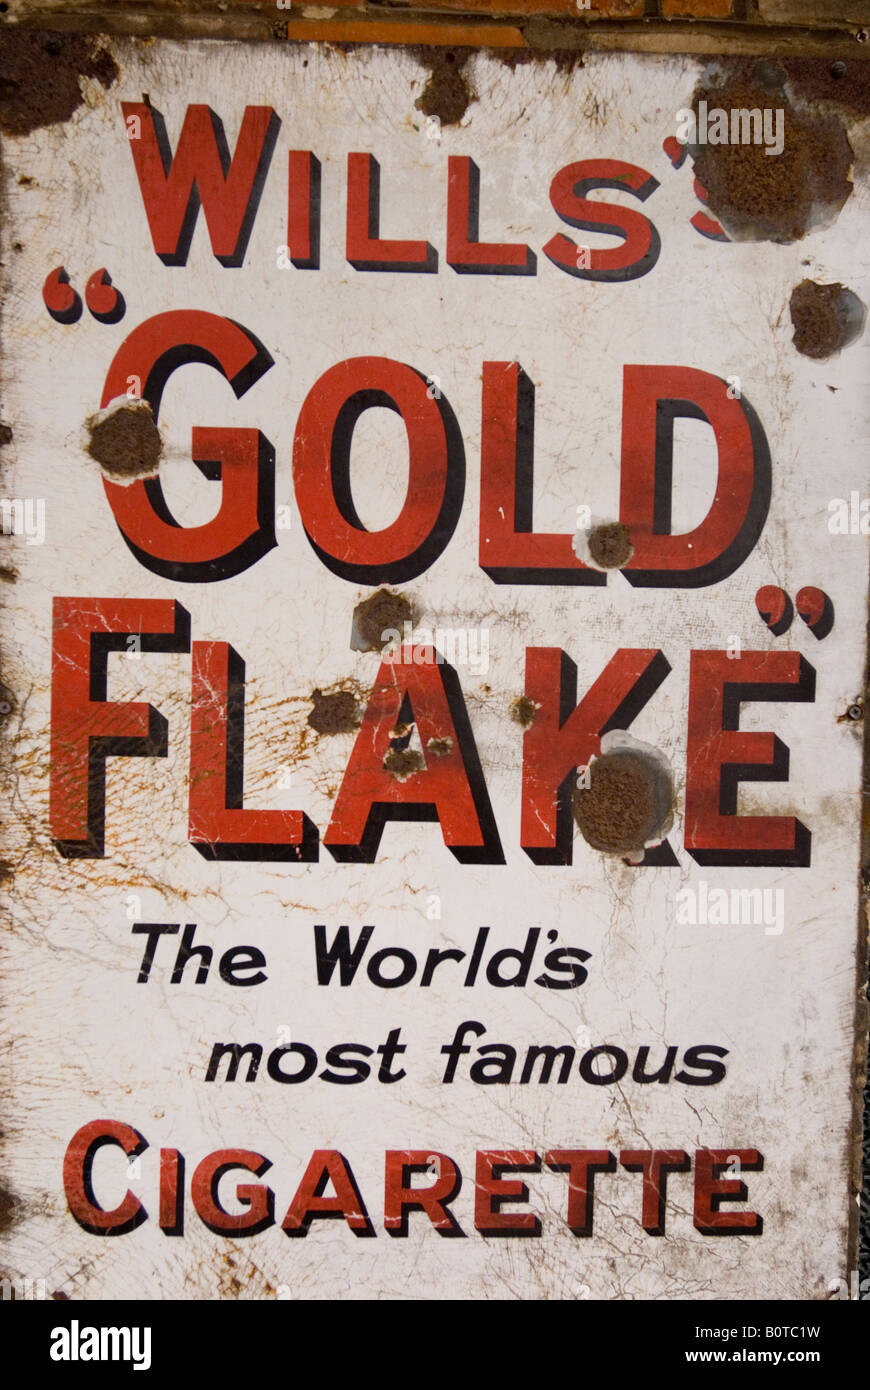 Wills Gold Flake Cigarette Sign - Stock Image